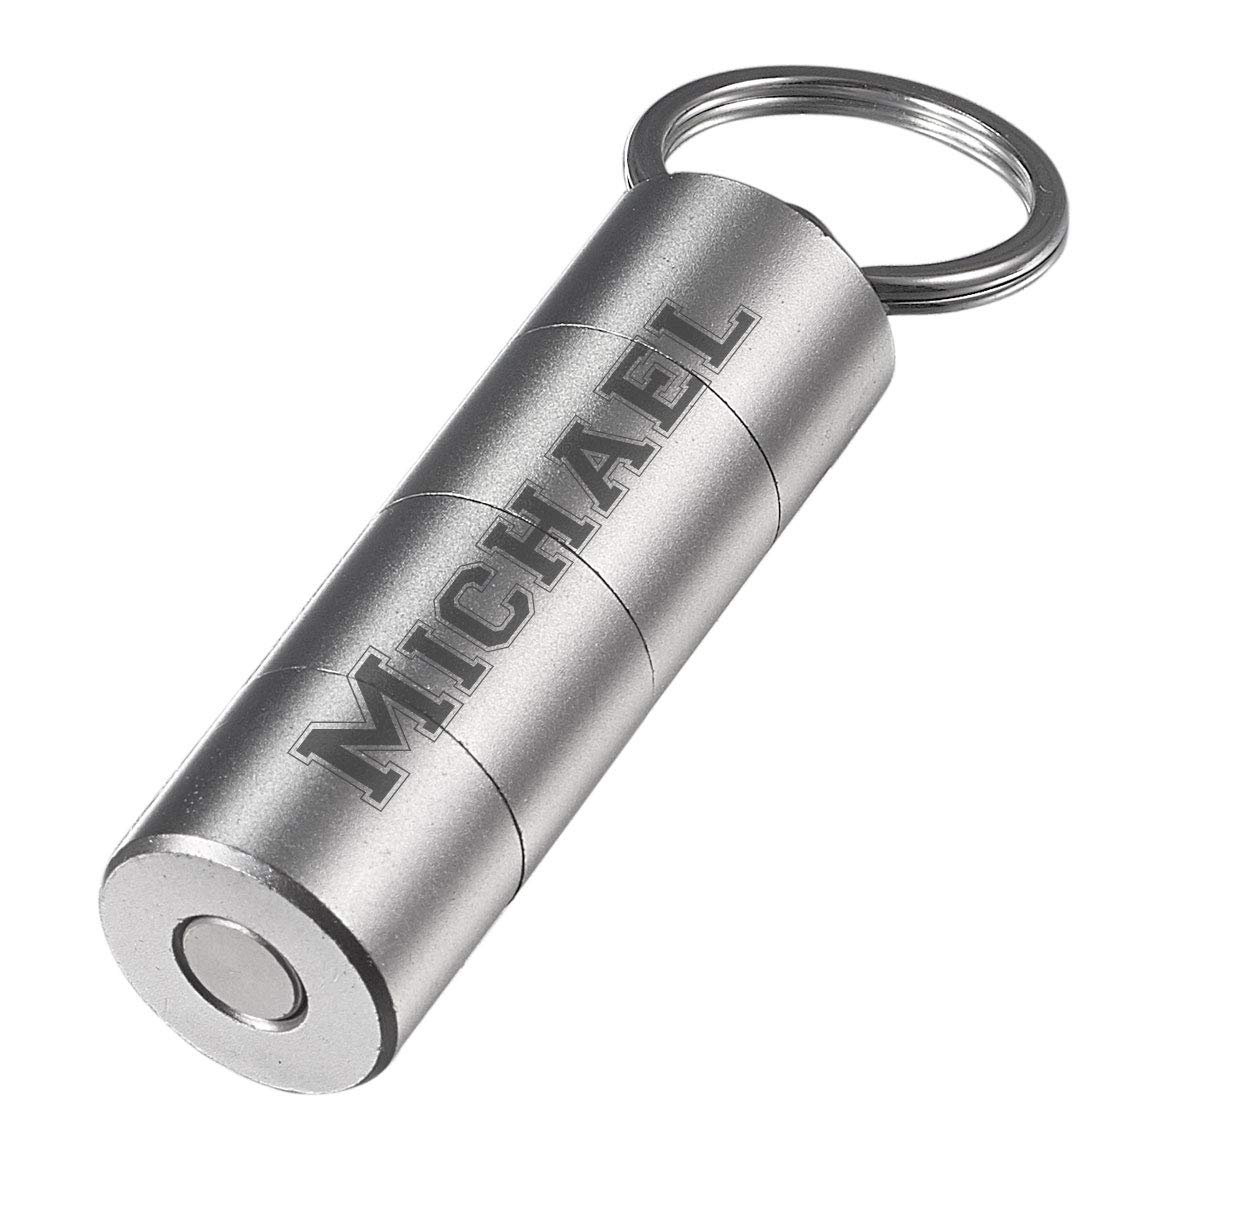 Personalized Visol Torpedo Three Cut Cigar Punch - Silver with Free Engraving